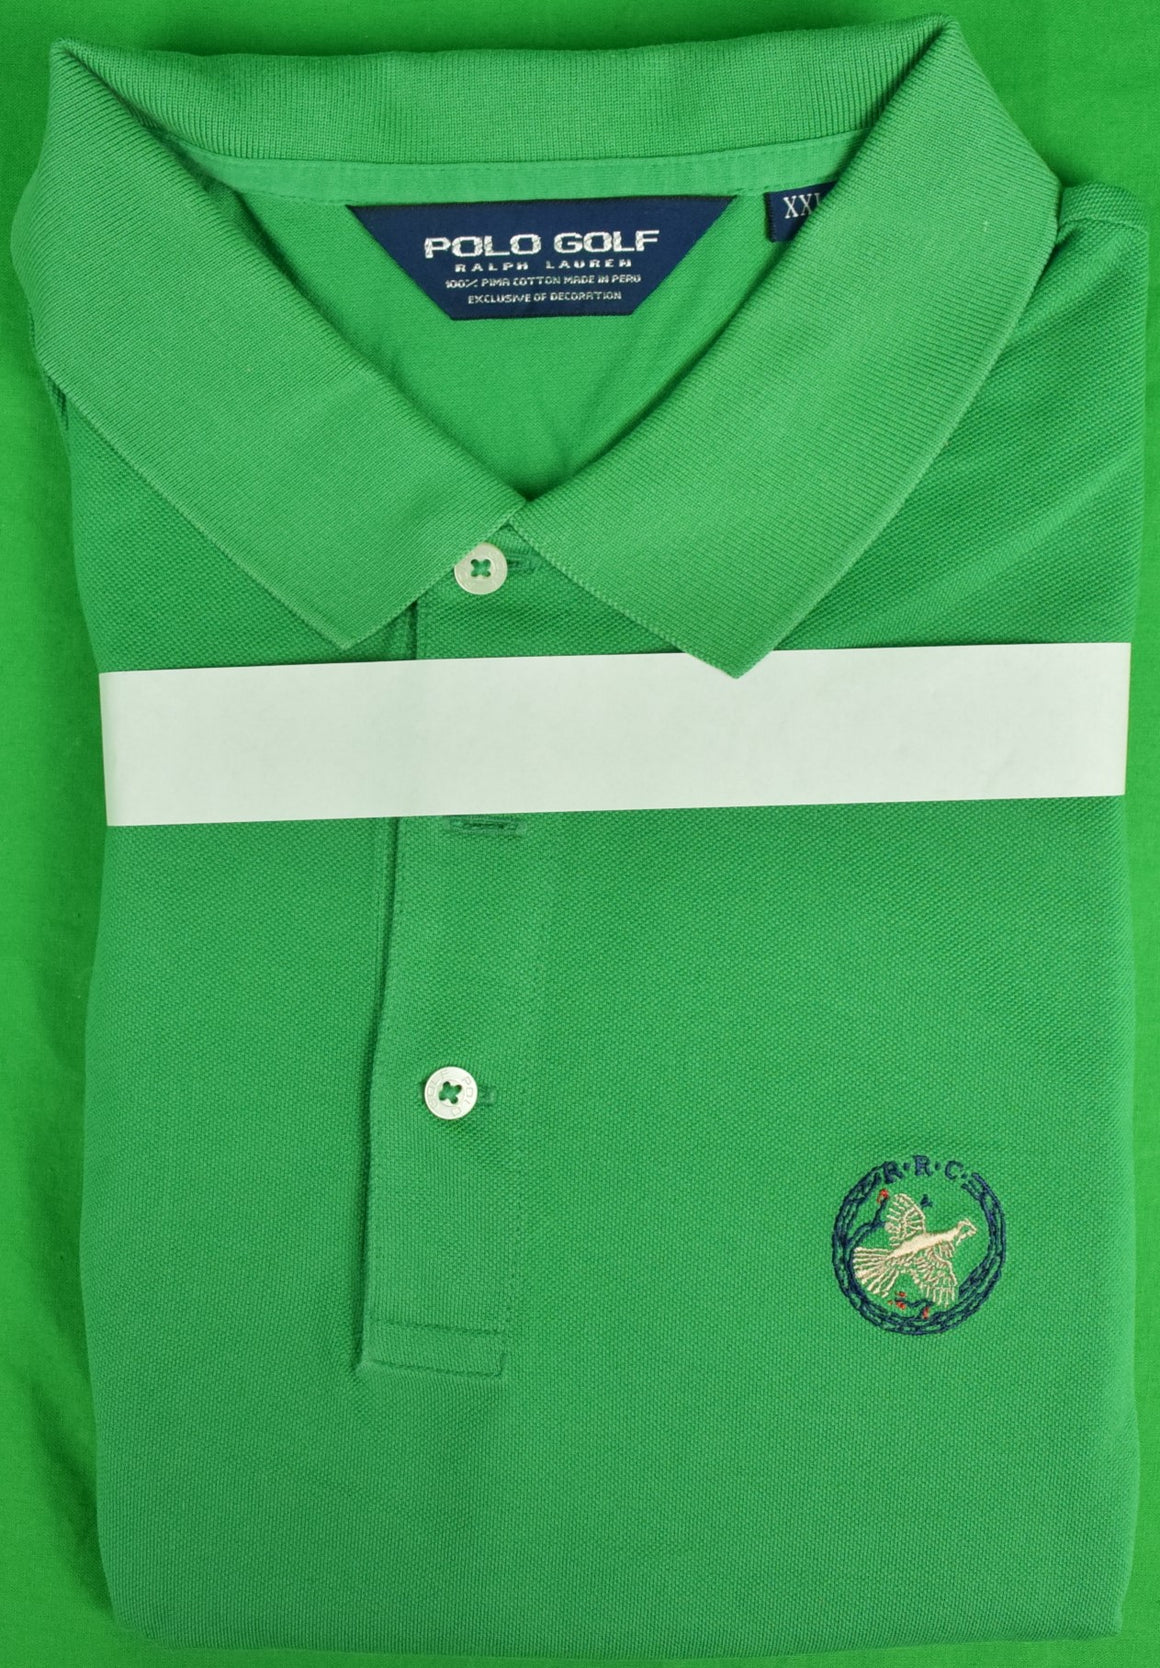 Ralph Lauren Polo Golf Green Polo Shirt w/ Rolling Rock Club Logo Sz: XXL